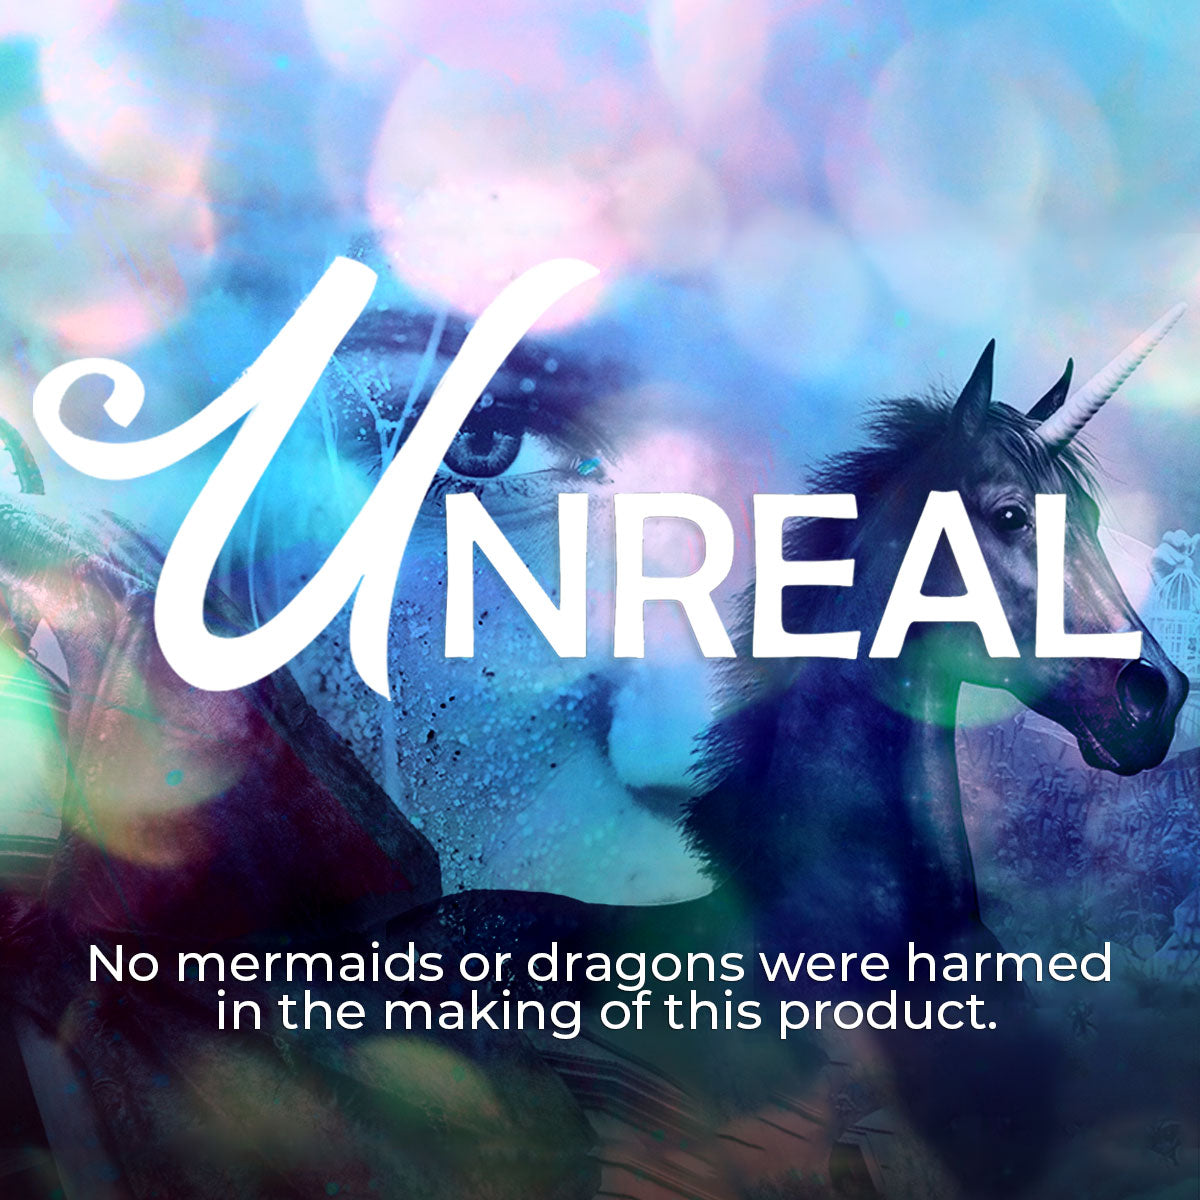 Unreal Collection - No mermaids or dragons were harmed in the making of this product.